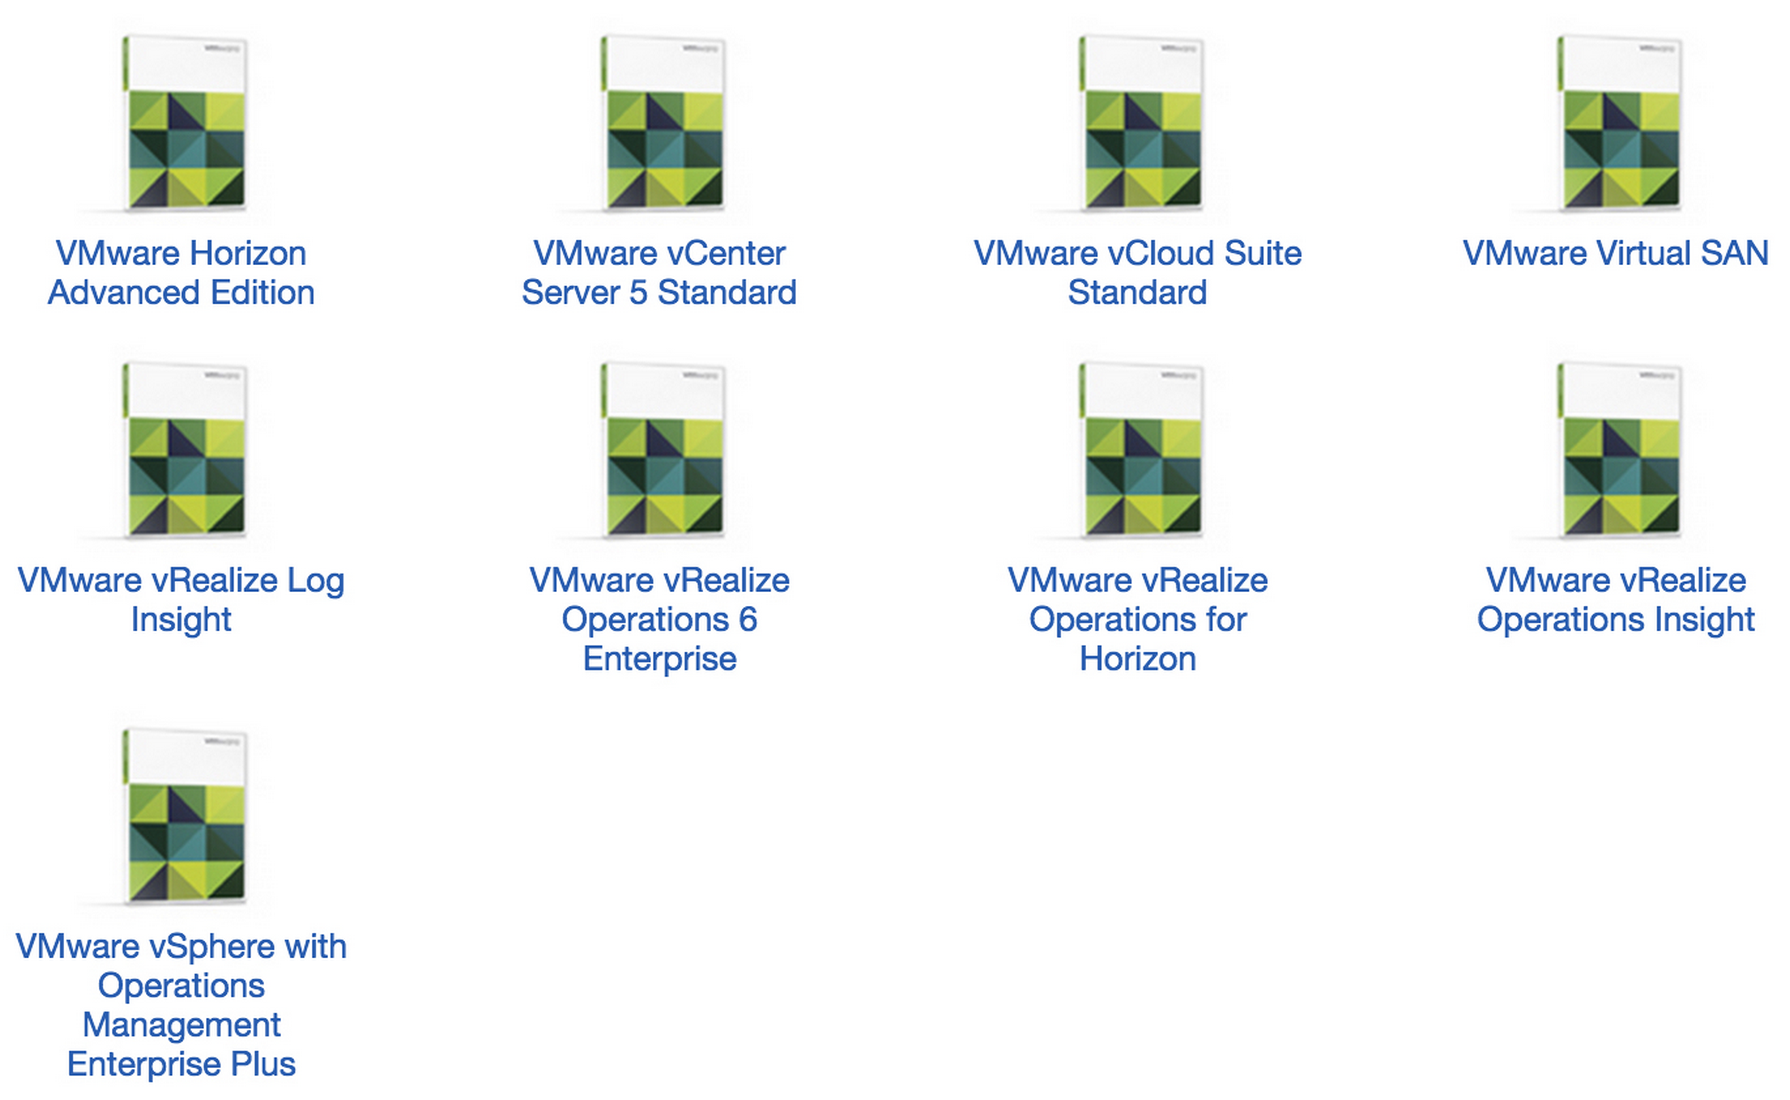 Get your 365-day License Keys for 9 VMware products - Eric